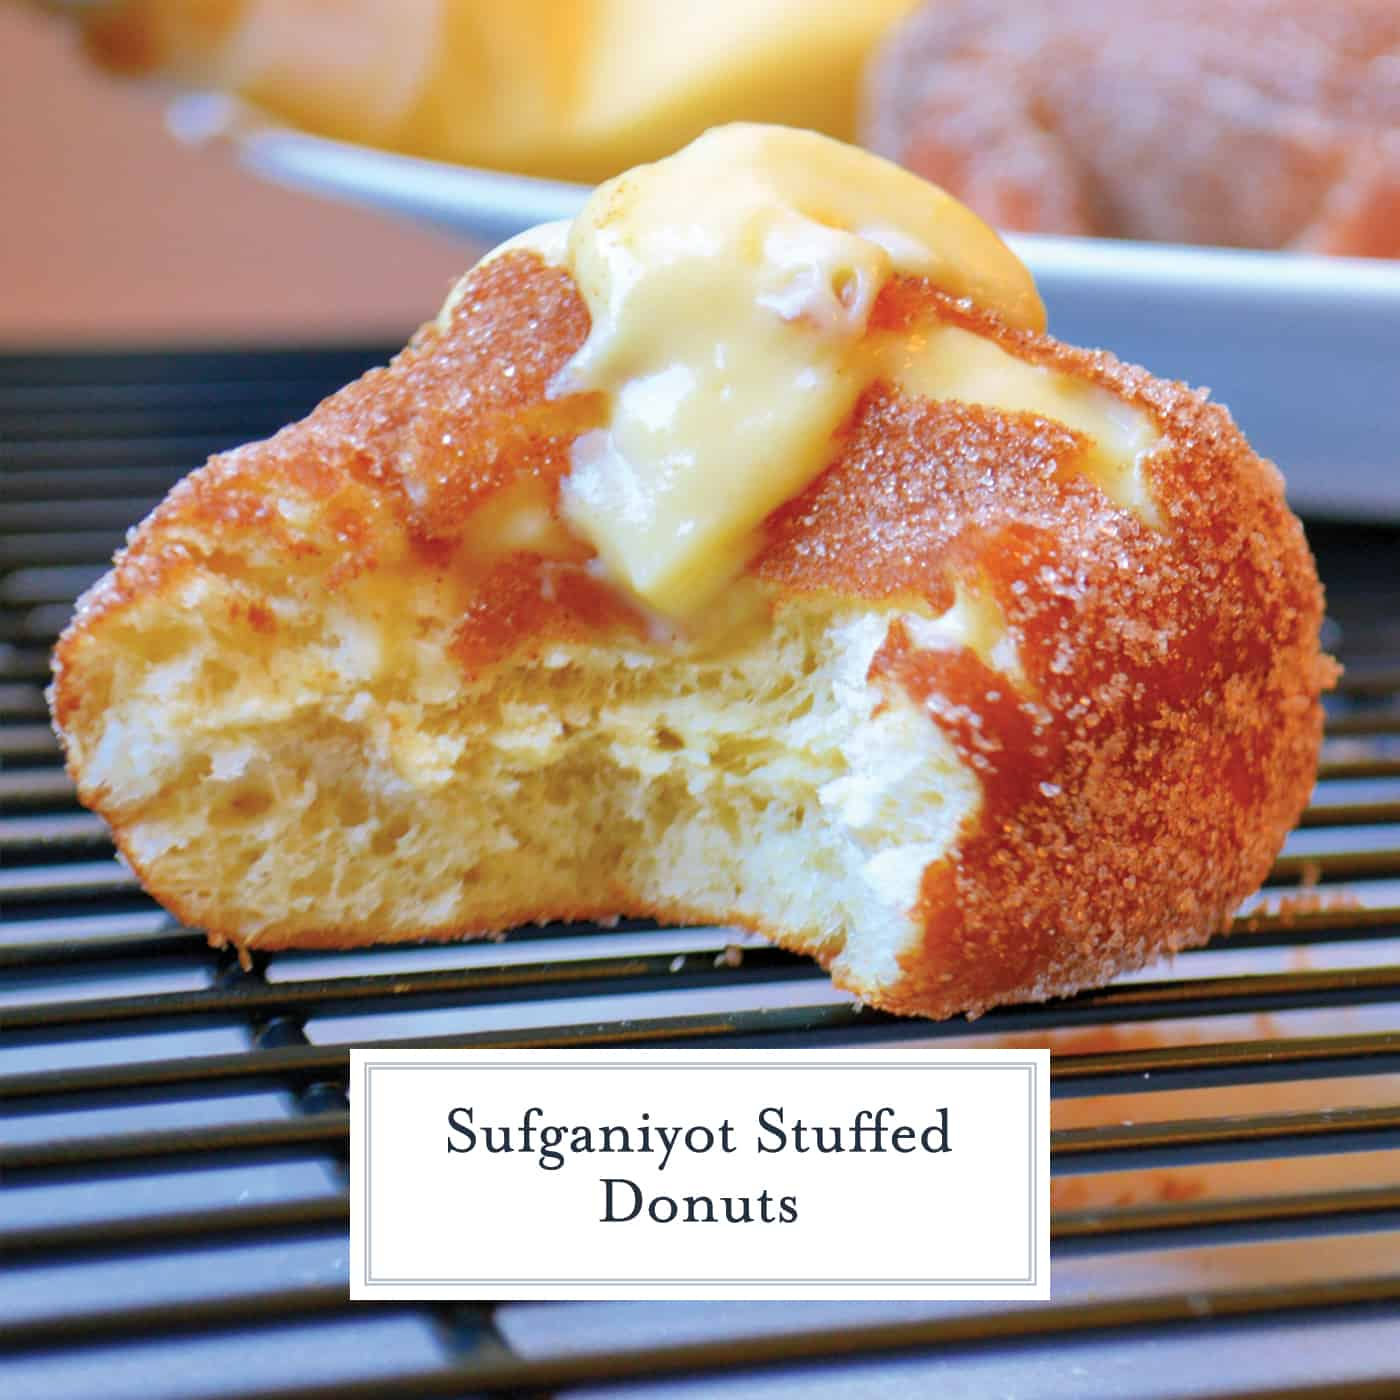 Sufganiyot Stuffed Donuts let you prepare warm & fresh strawberry jelly & vanilla custard stuffed donuts at home! Light & fluffy dough with a hint of sugar! #donutrecipe #stuffeddonuts #easysufganiyotrecipe www.savoryexperiments.com